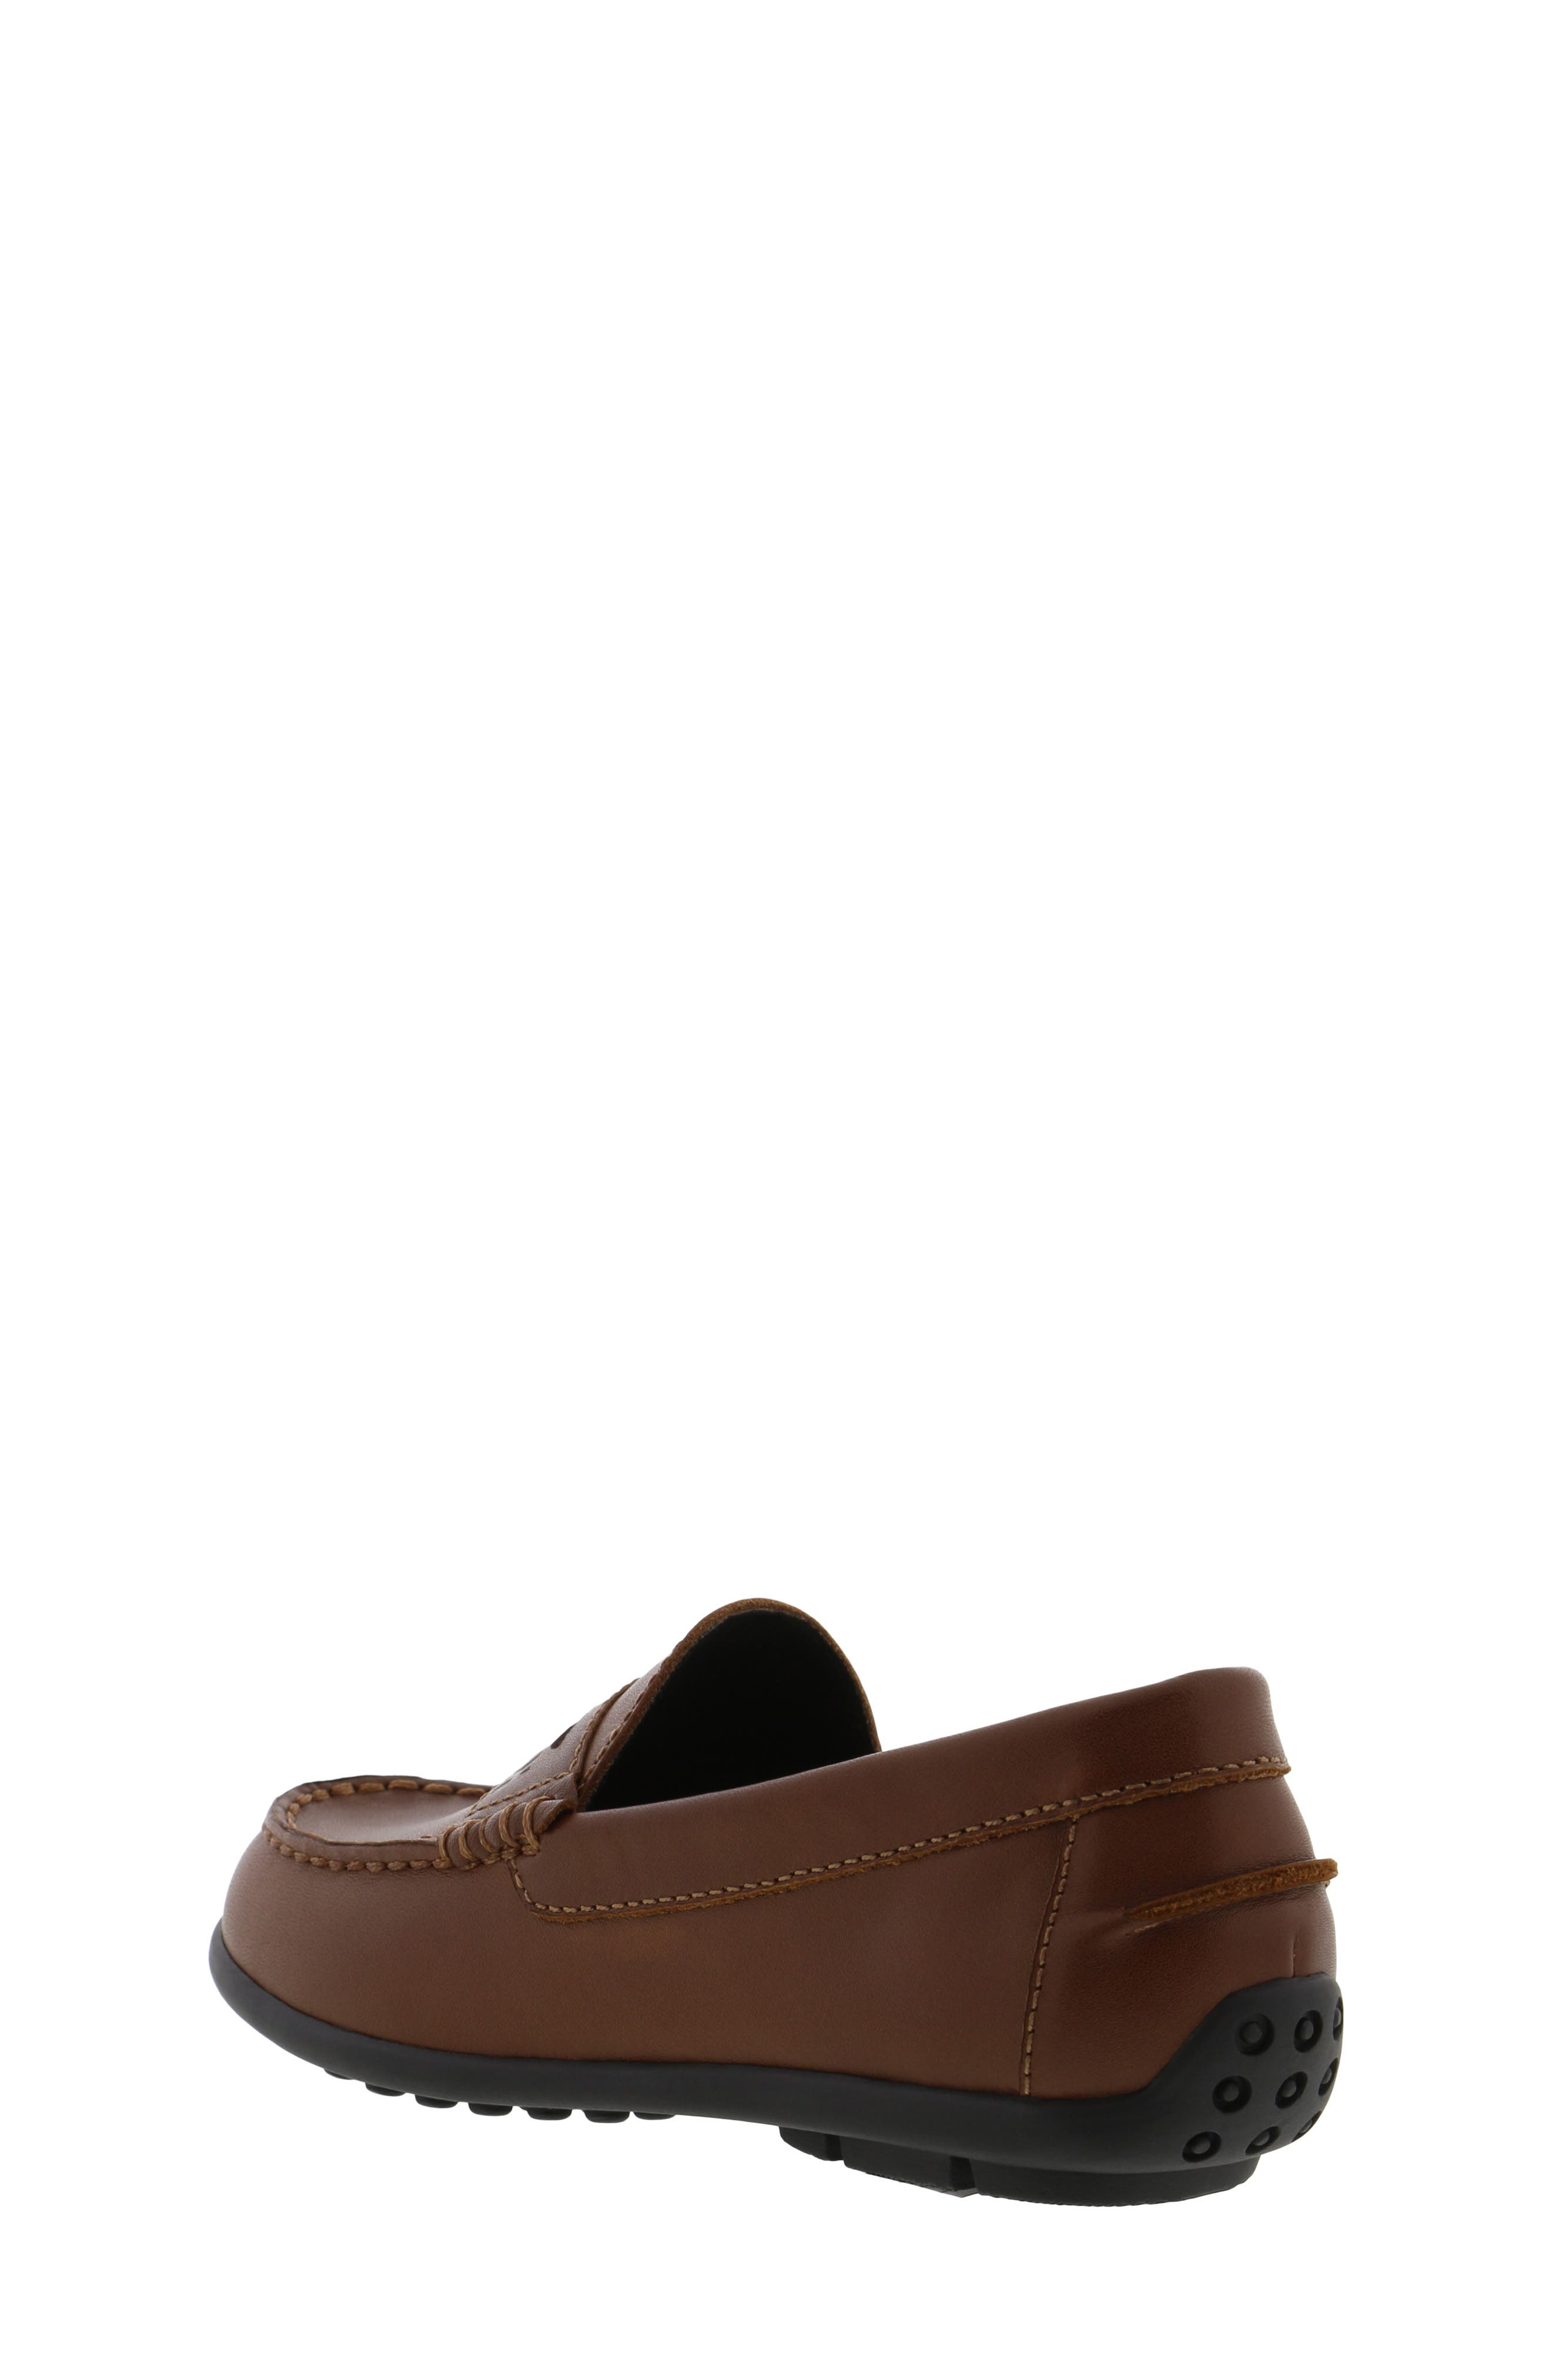 REACTION KENNETH COLE, Helio Gear Loafer, Alternate thumbnail 2, color, COGNAC